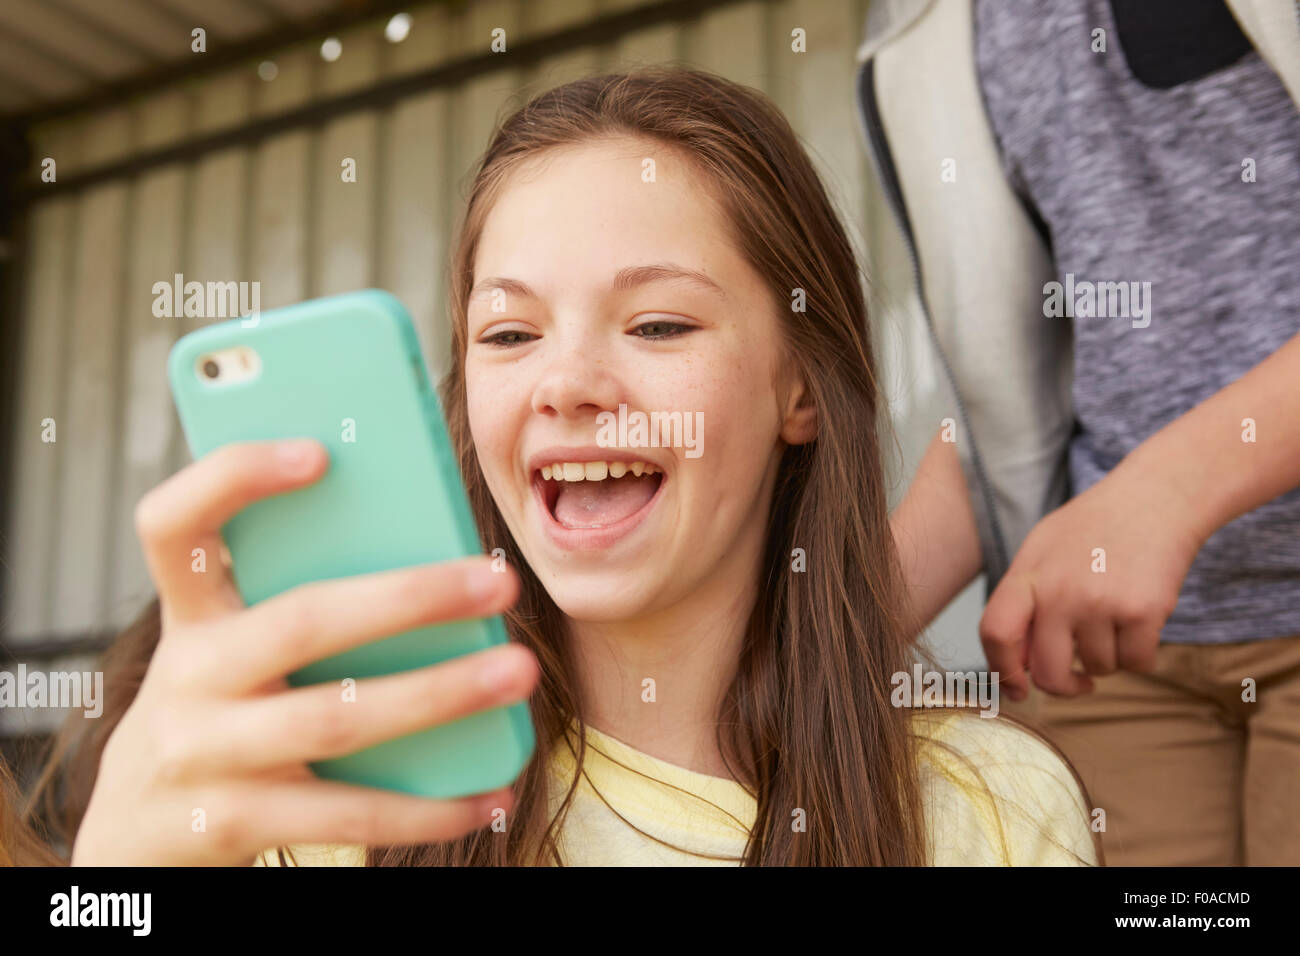 Girls laughing at smartphone in shelter - Stock Image